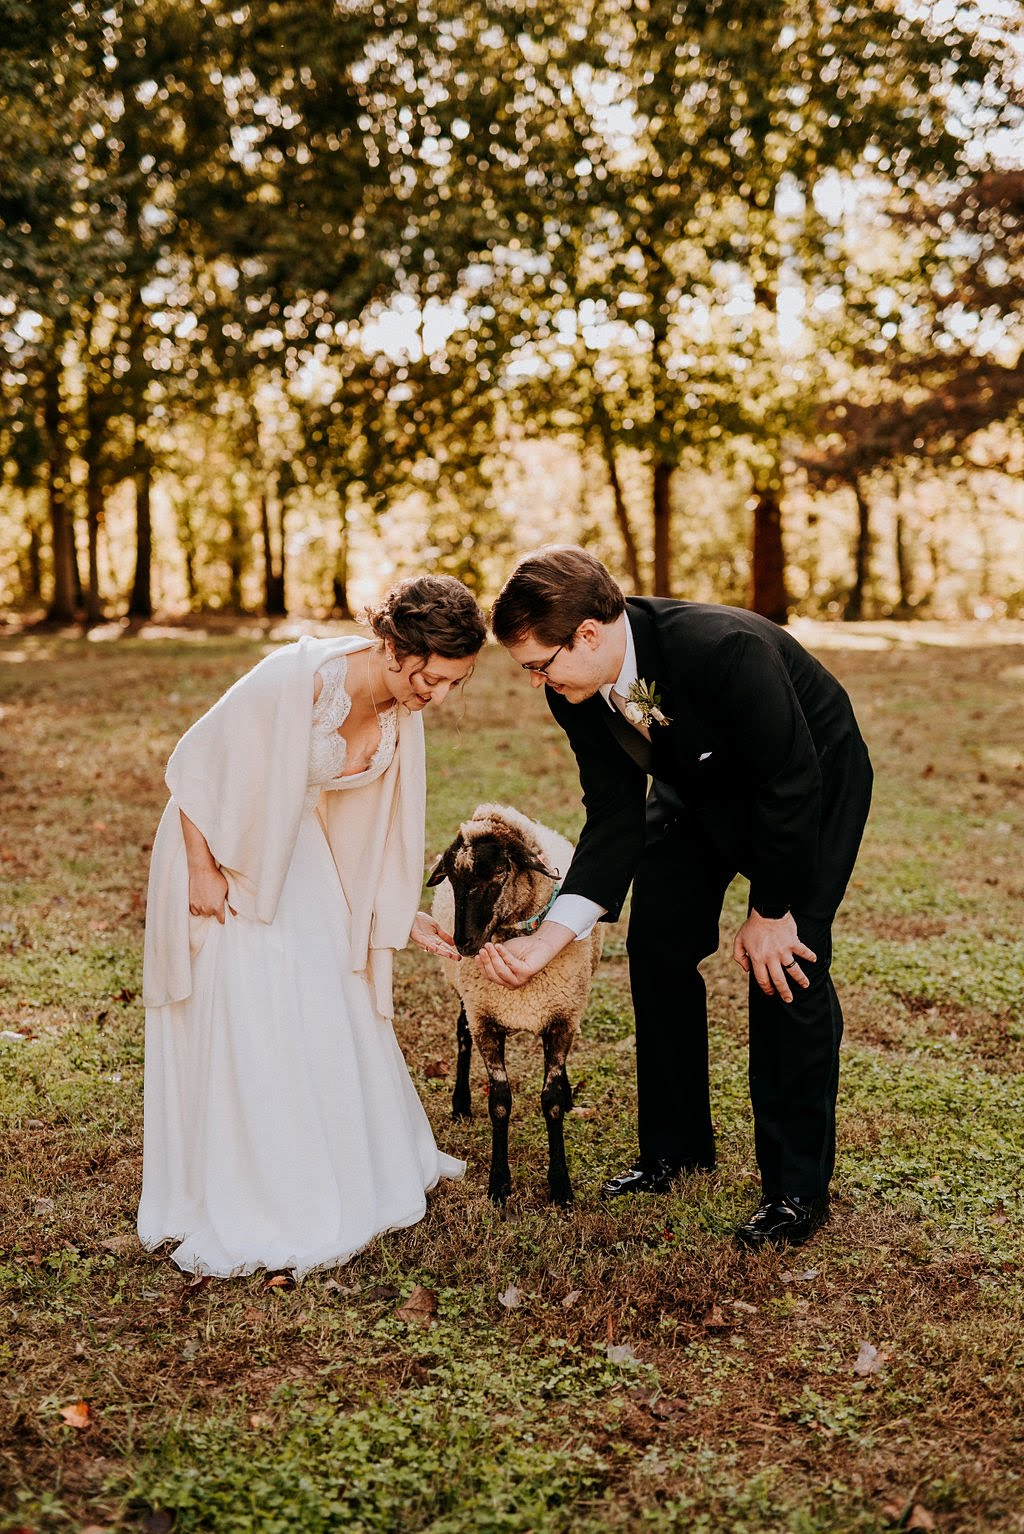 """I also cant stress enough how beautiful this place is, and the heritage livestock and other farm animals add to the charm. Highly recommend getting married here!"" - -Kelly, Married 10.27.2018 